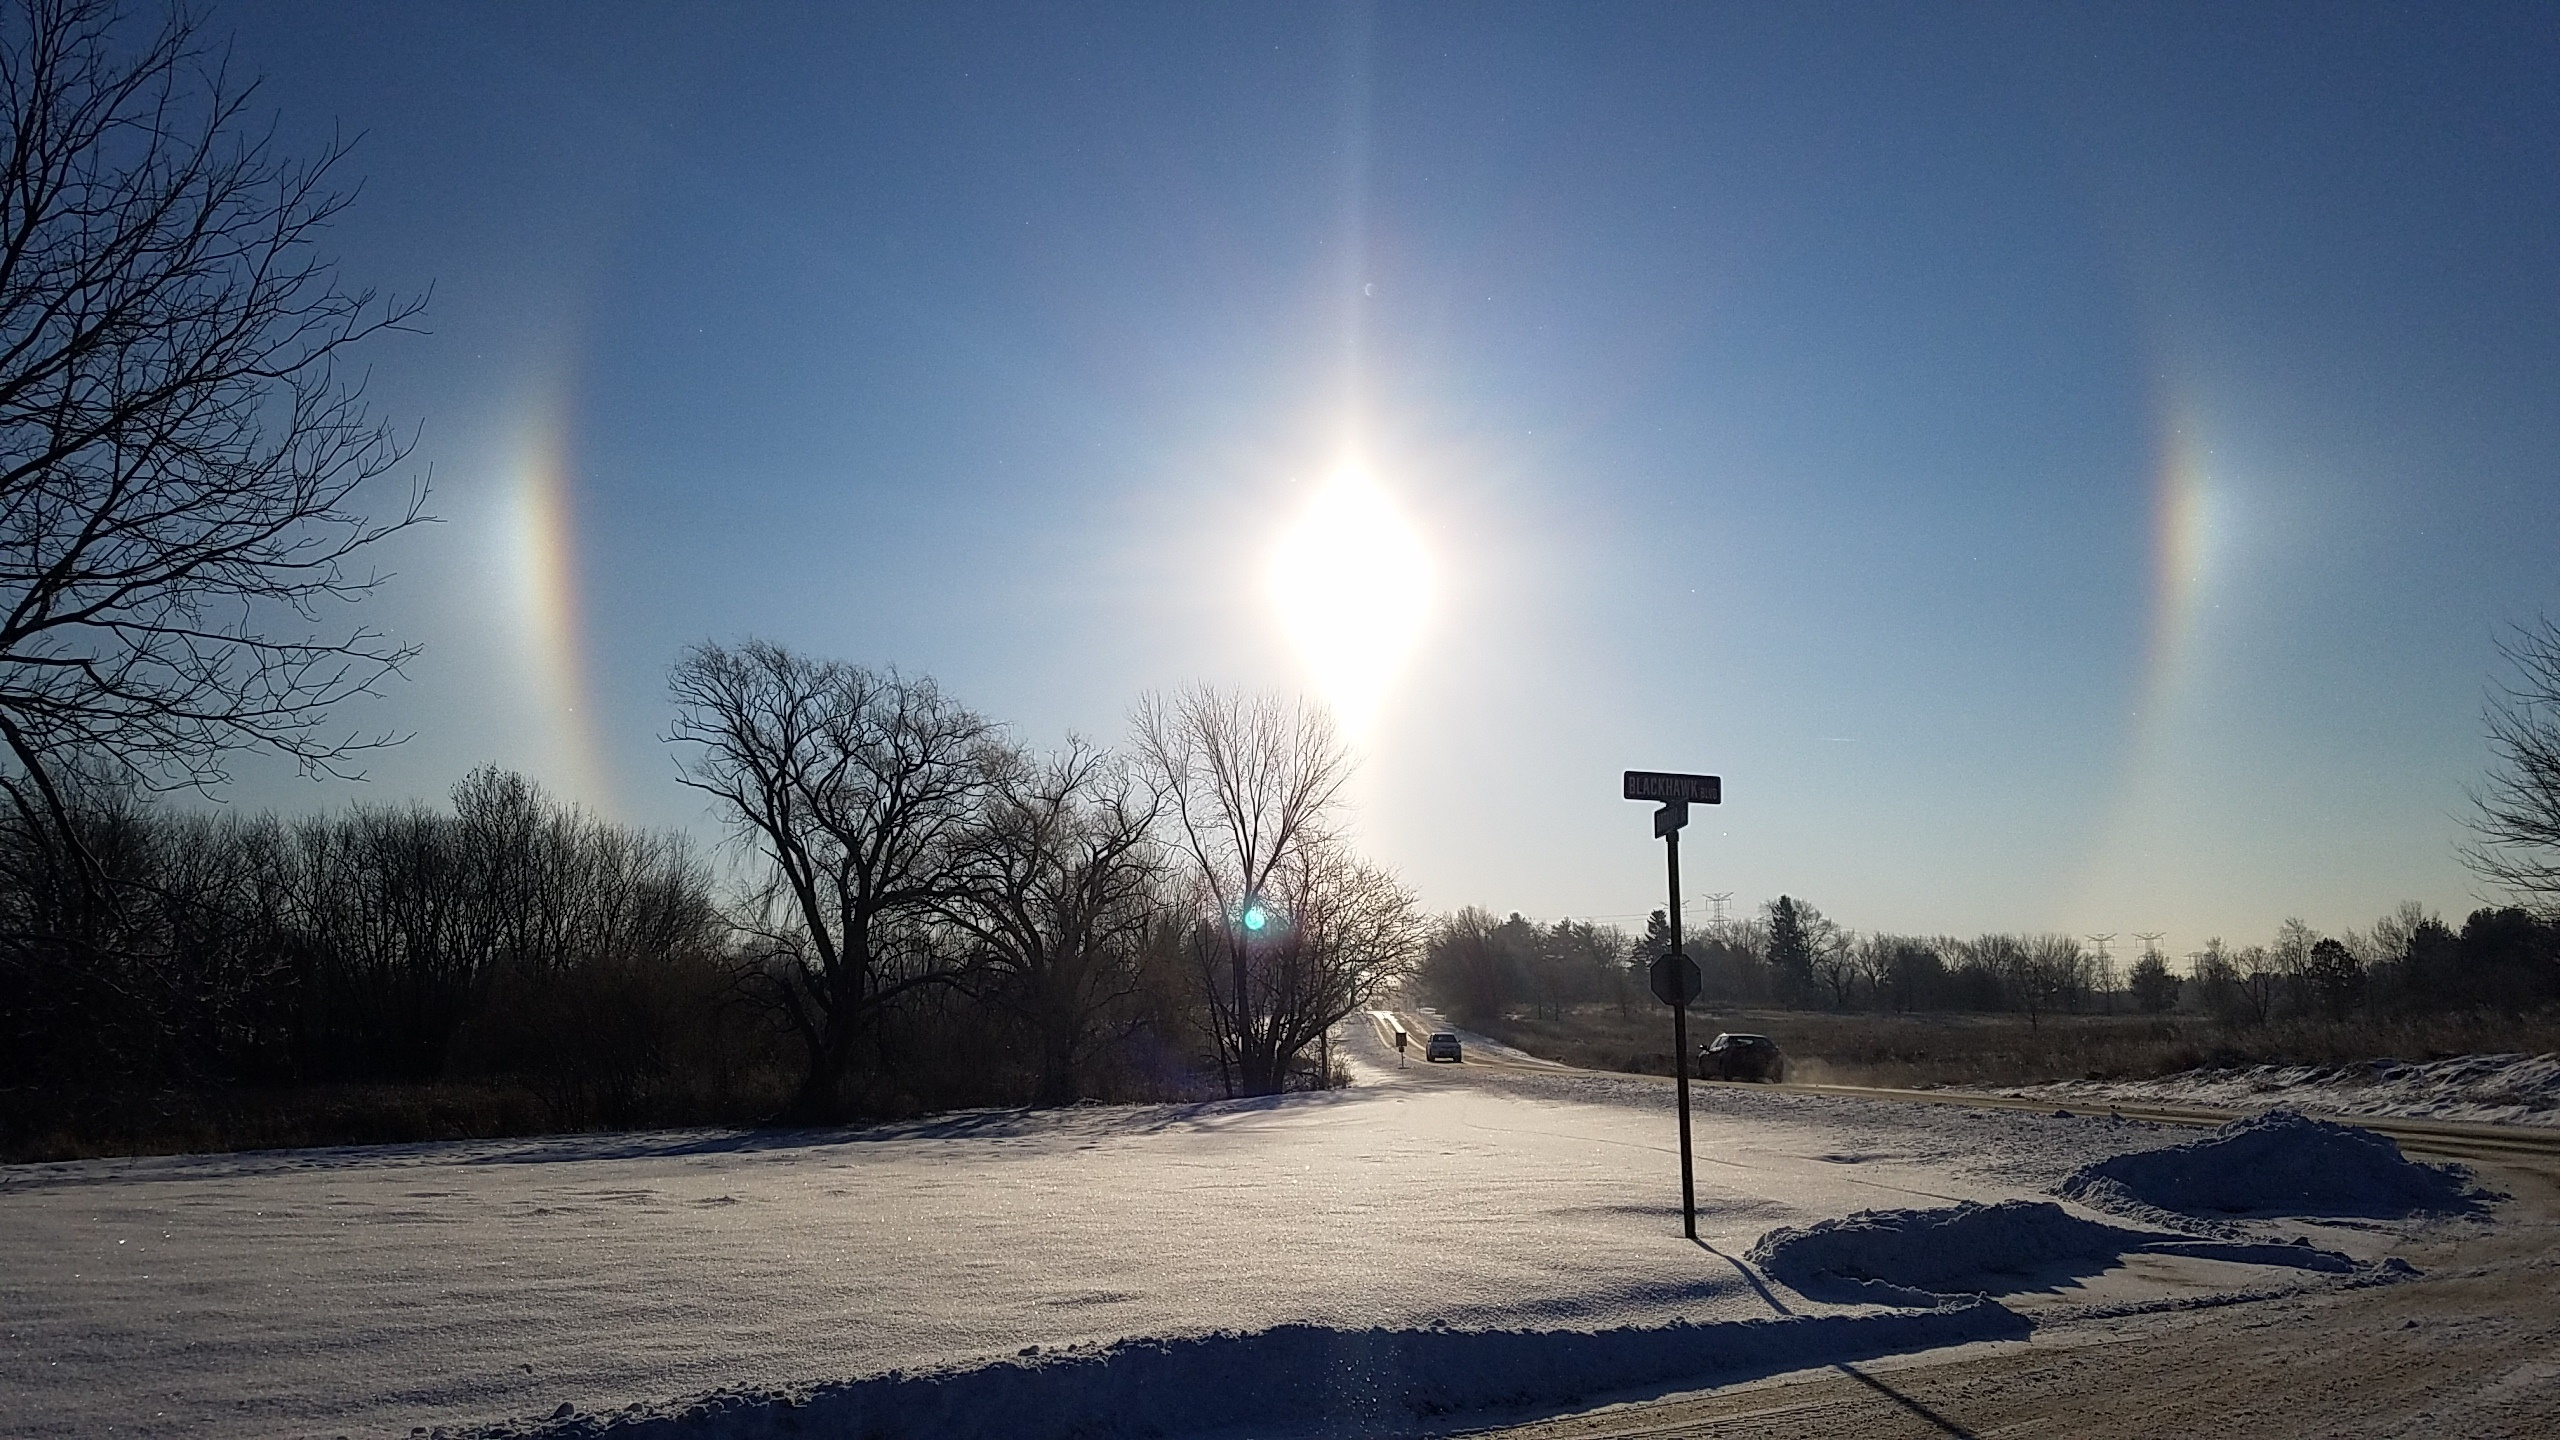 A sun dog greets employees and visitors early in the morning on Feb. 6. Photo: Russell Wiedman, nature, sky, sun, winter